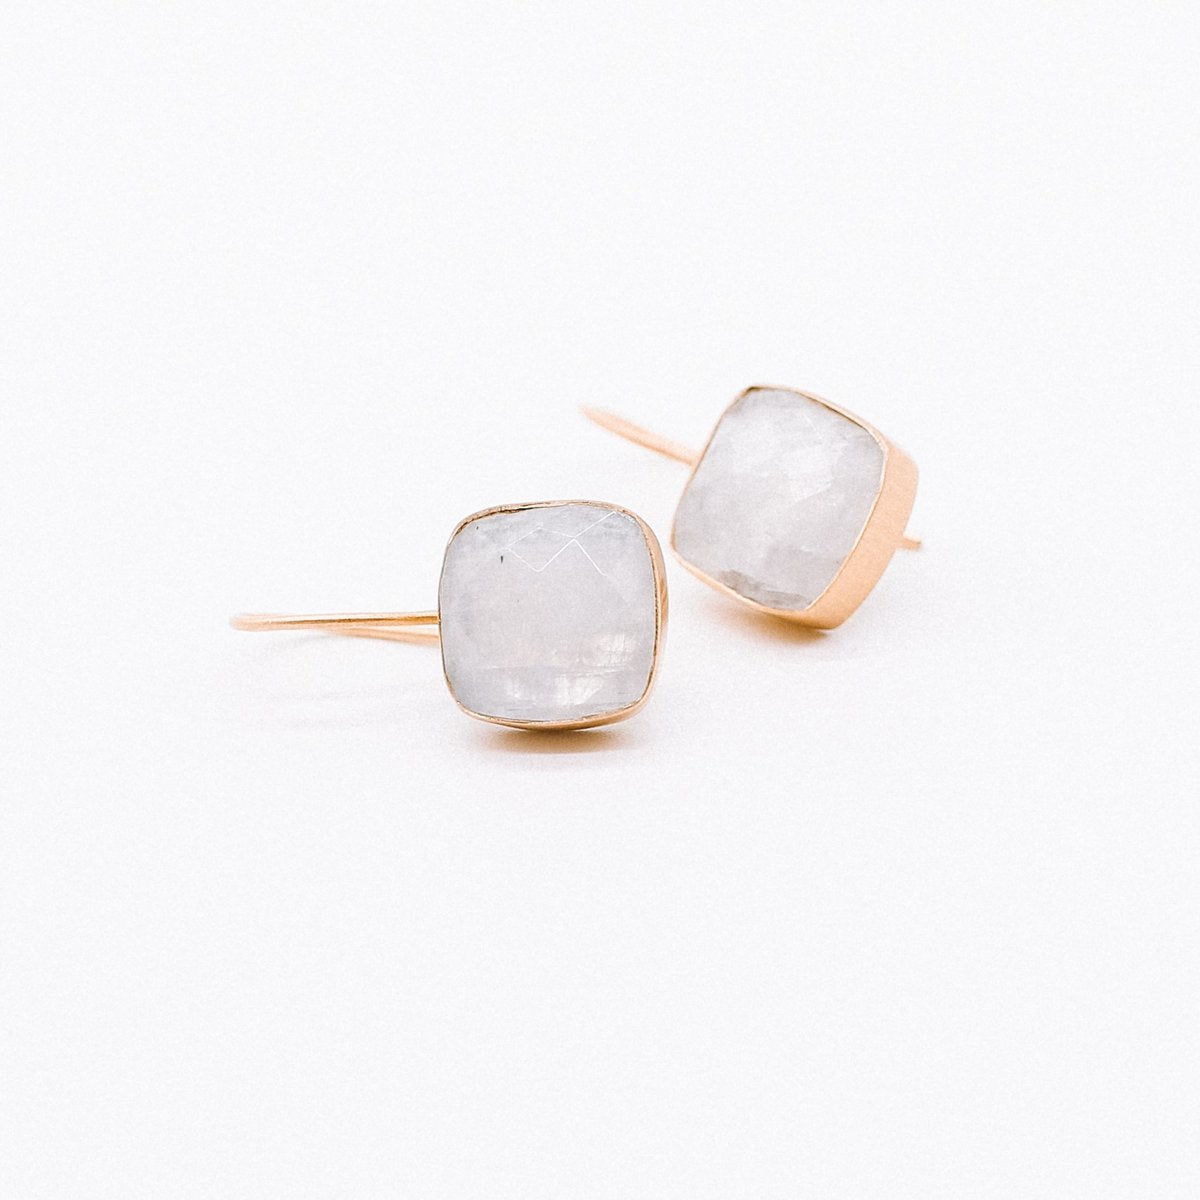 Large rainbow moonstone earrings with gold hook